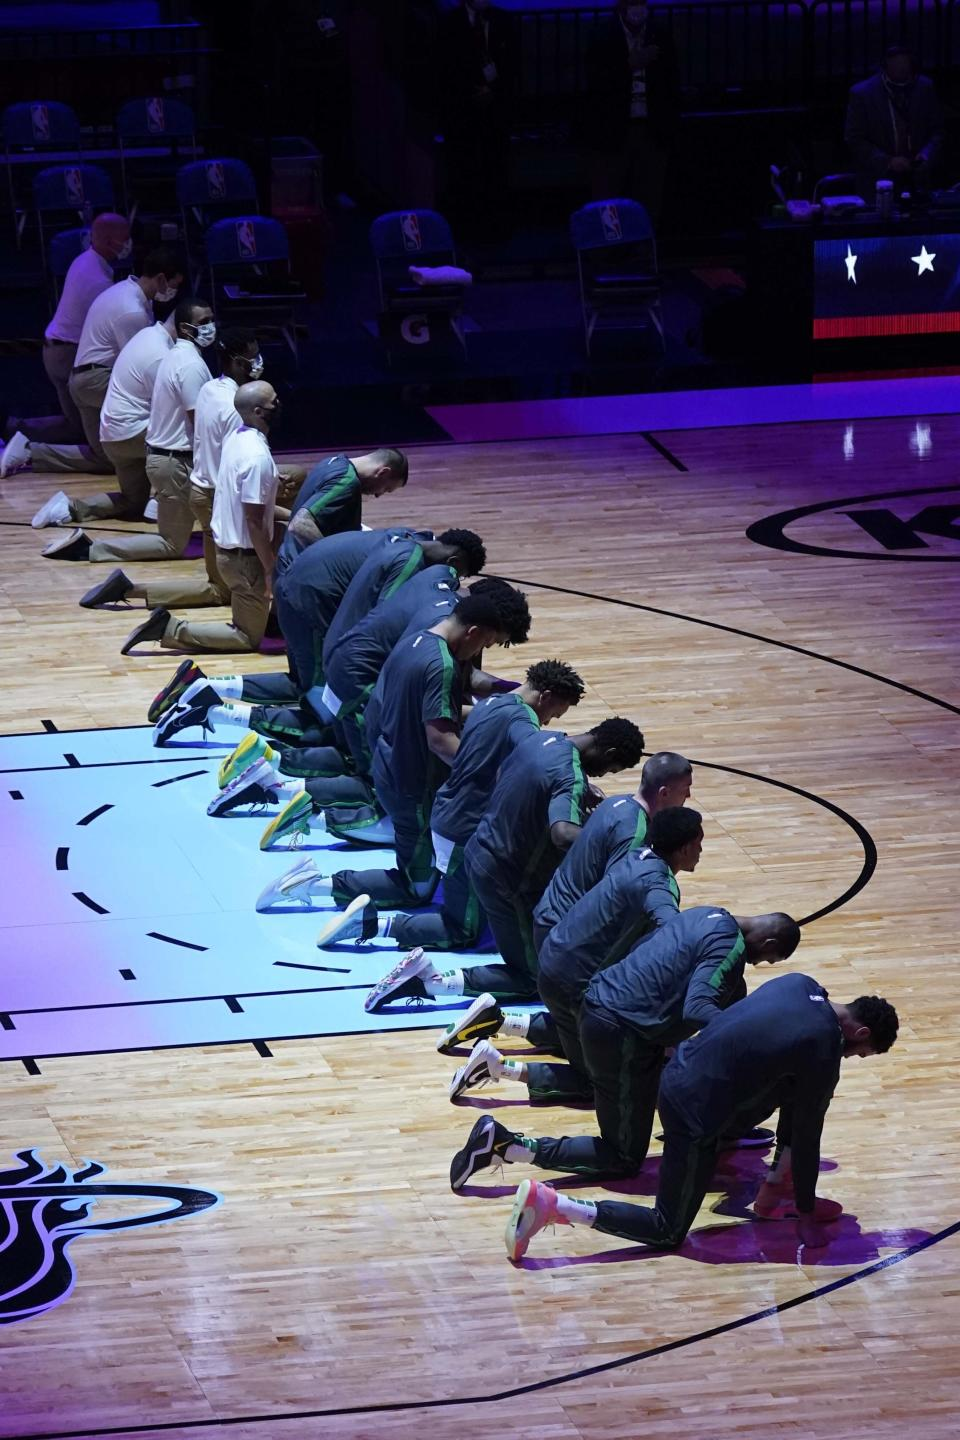 The Miami Heat team kneels during the playing of the National Anthem before an NBA basketball game against the Boston Celtics, Wednesday, Jan. 6, 2021, in Miami. (AP Photo/Marta Lavandier)